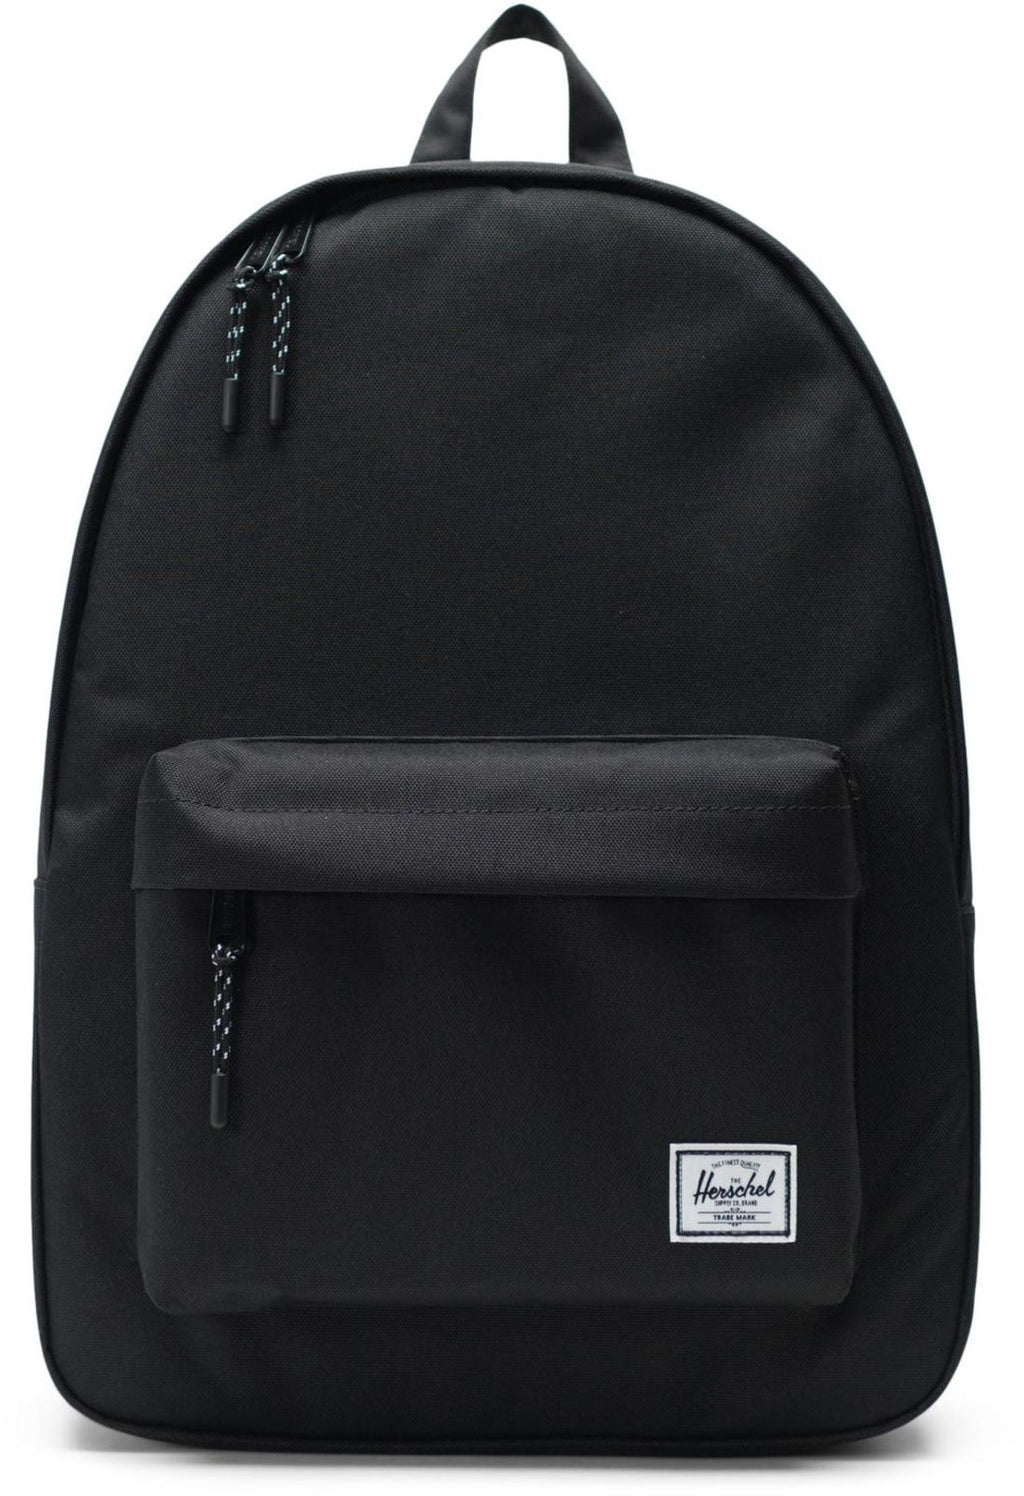 Herschel Supply Co Classic Backpack Bag